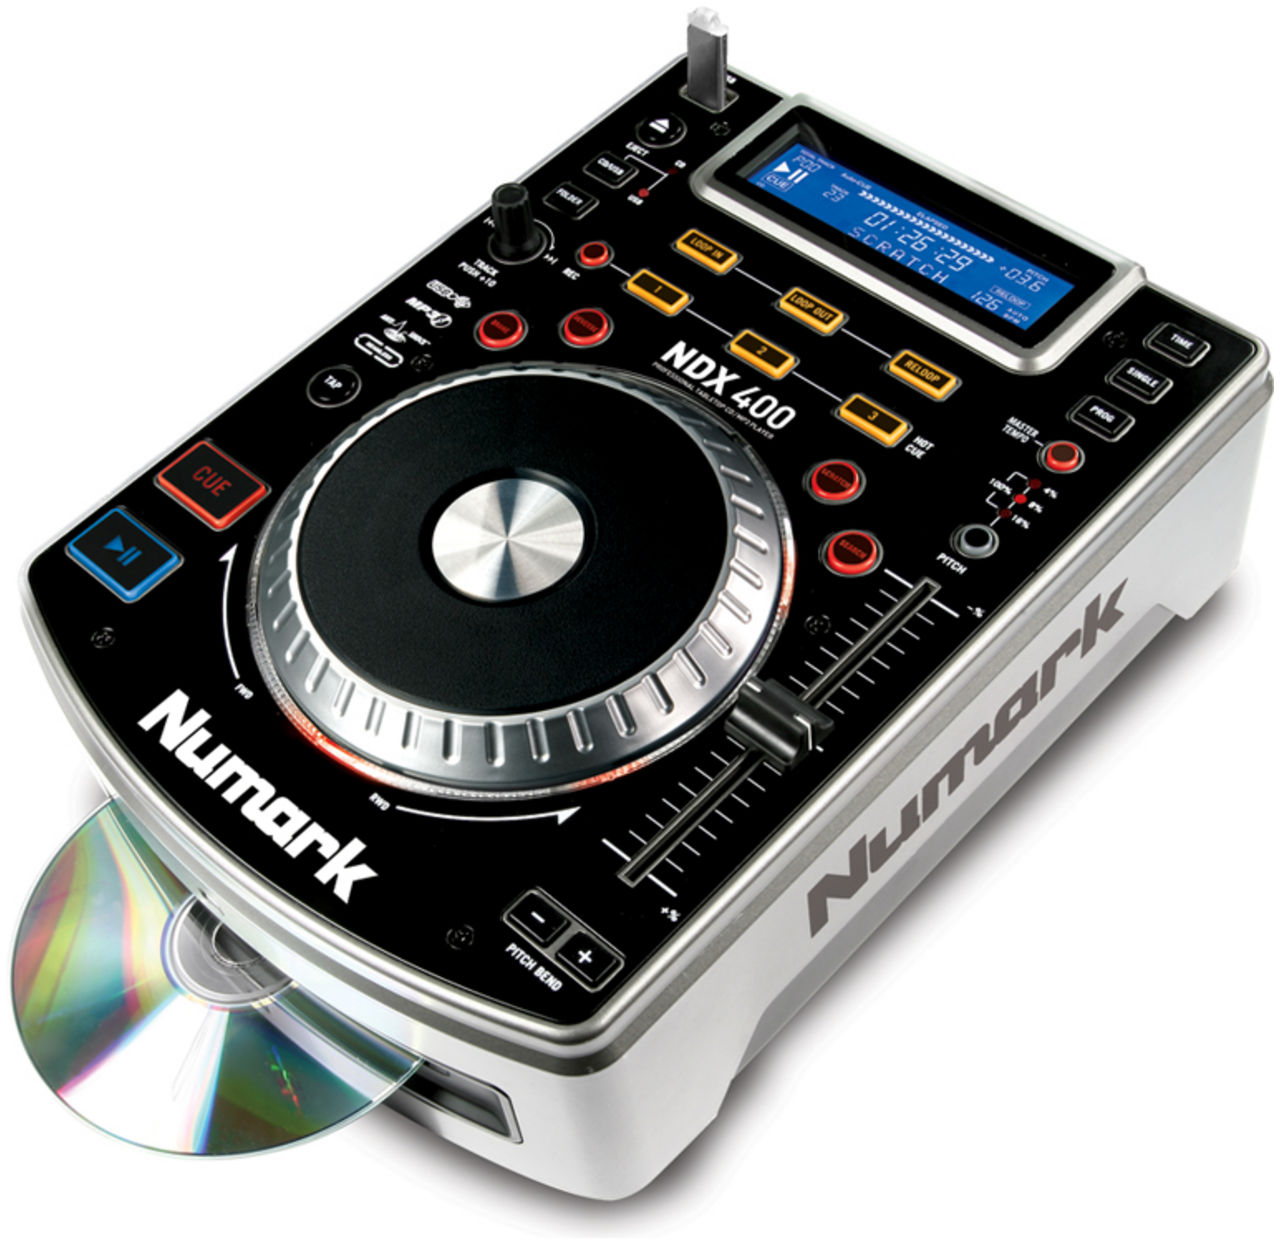 Numark NDX400 CD & USB Player